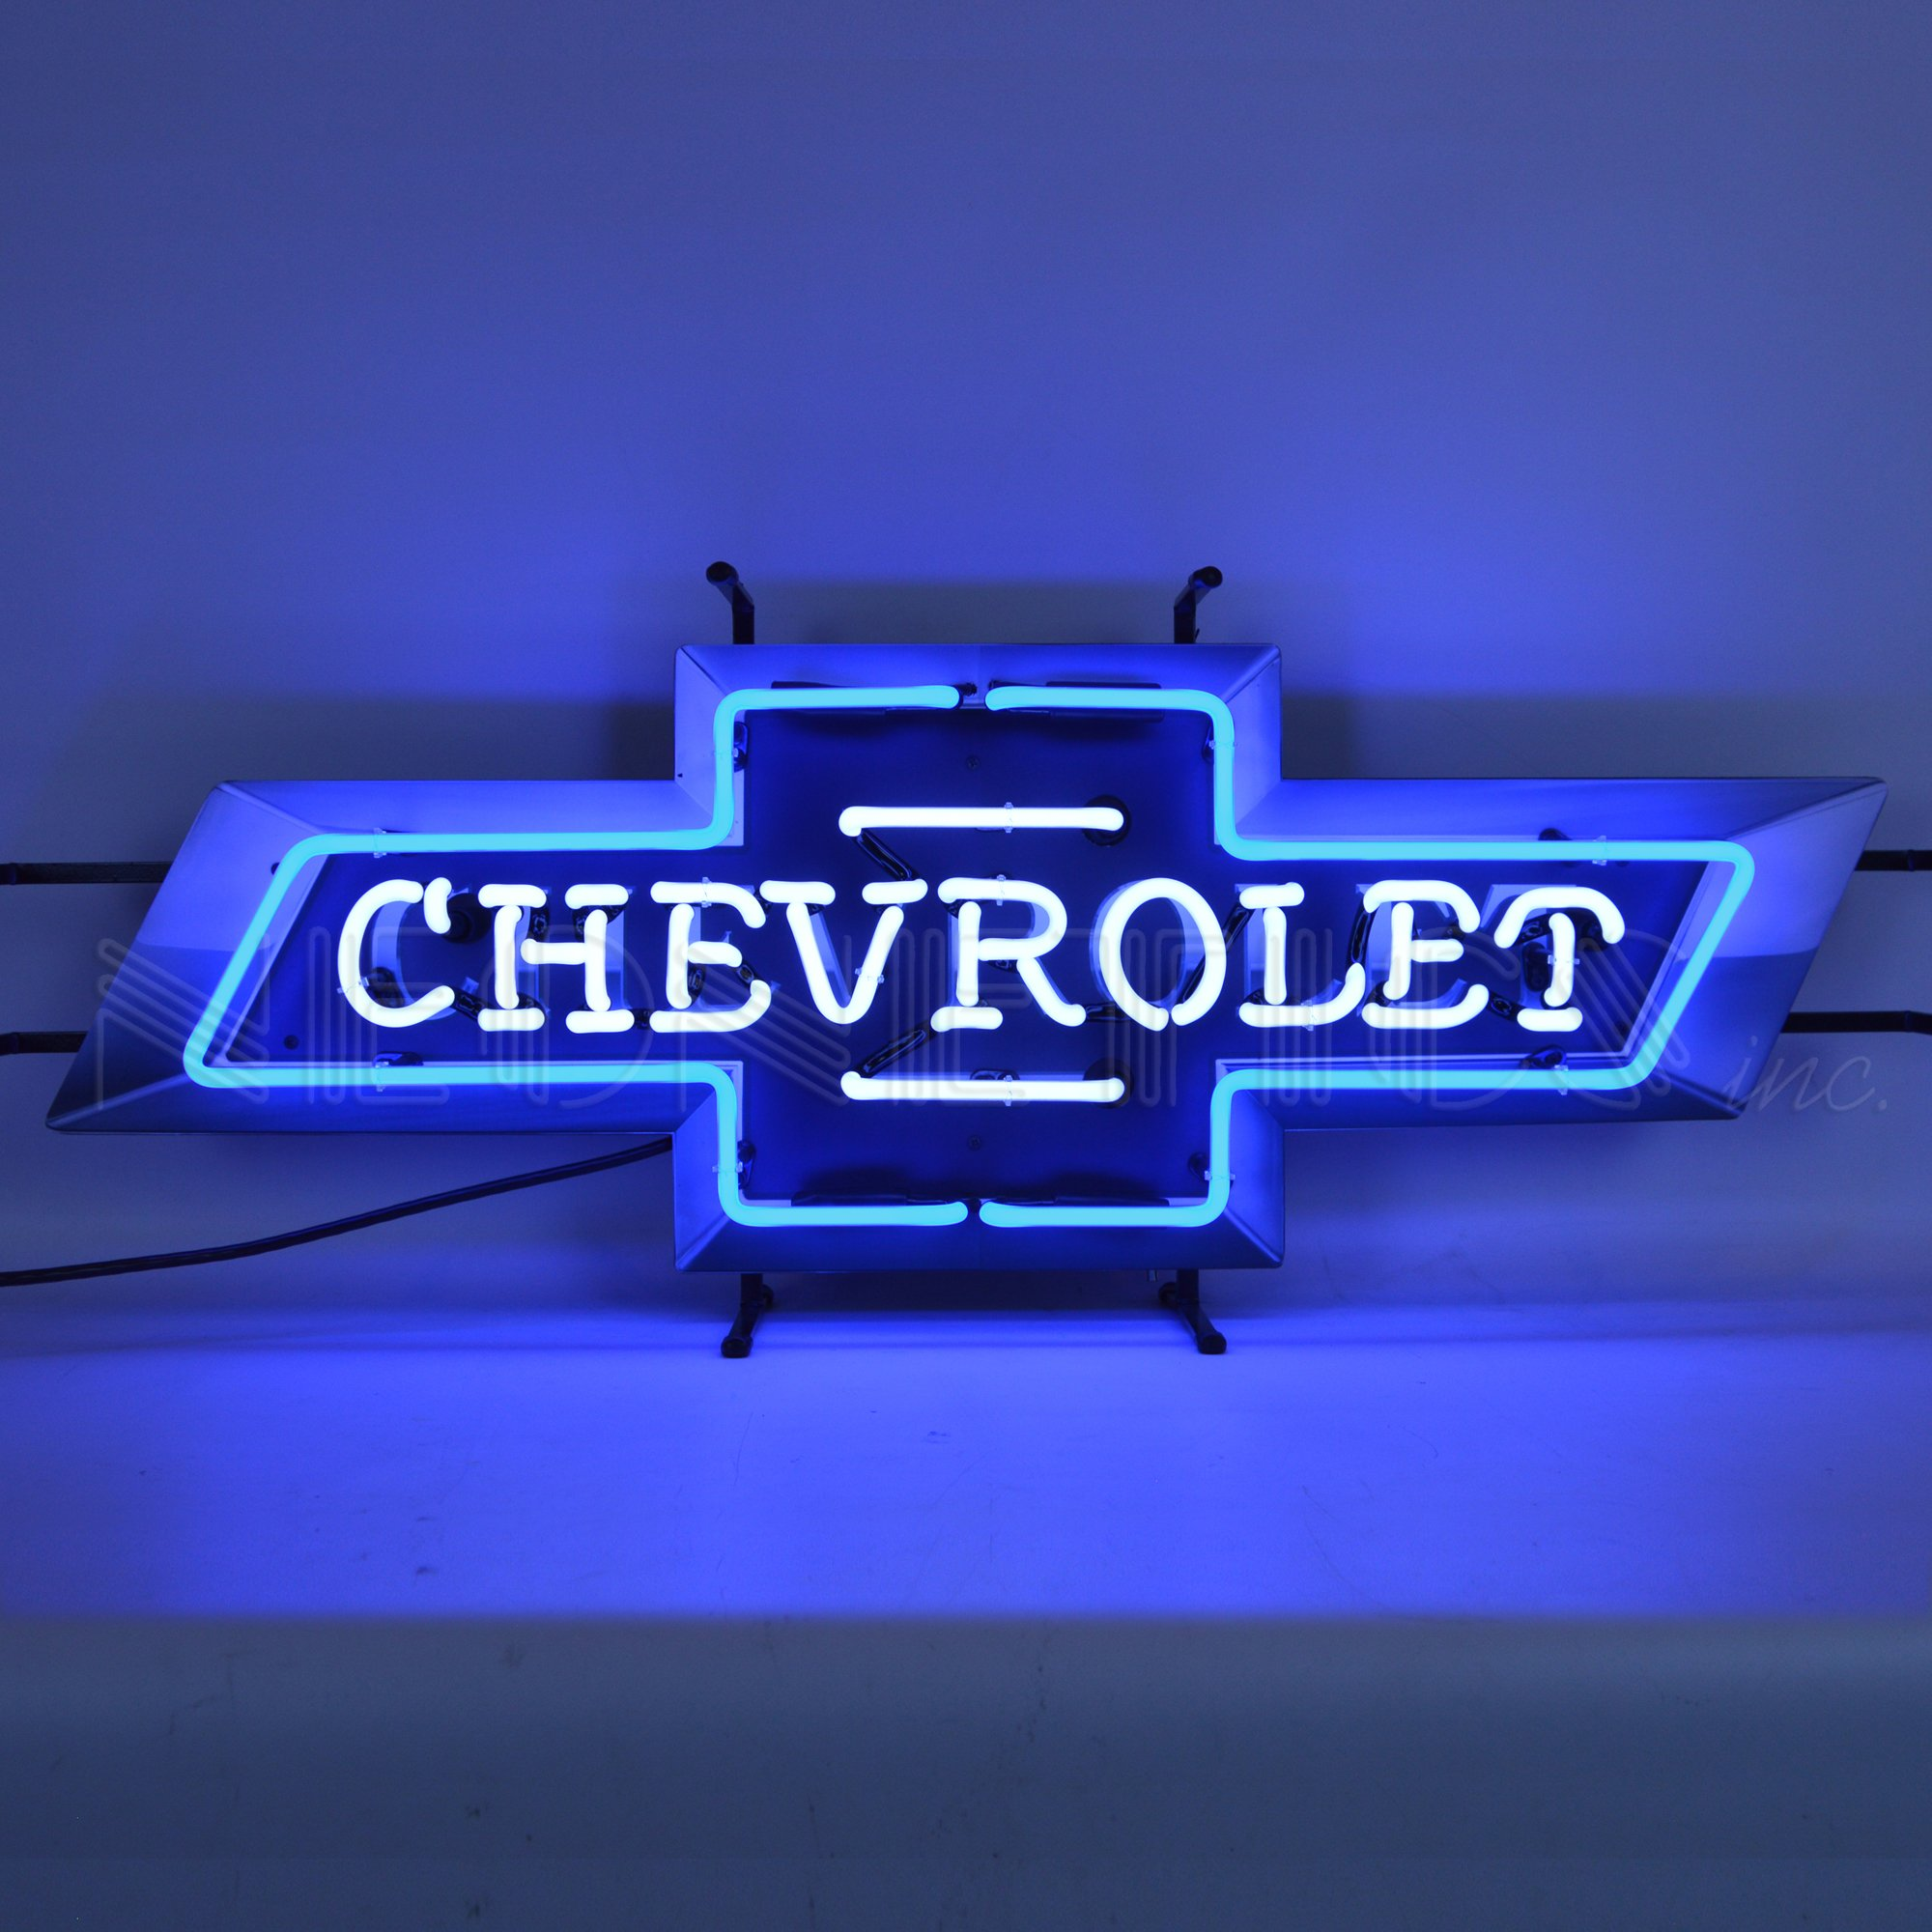 Chevrolet Chevy Bowtie Neon Sign With Backing by Neonetics, Blue and White Hand Blown Real Neon tubes, Measures 37 Inches Wide By 14 Inches Tall By 4 Inches Deep – 5CHEVB